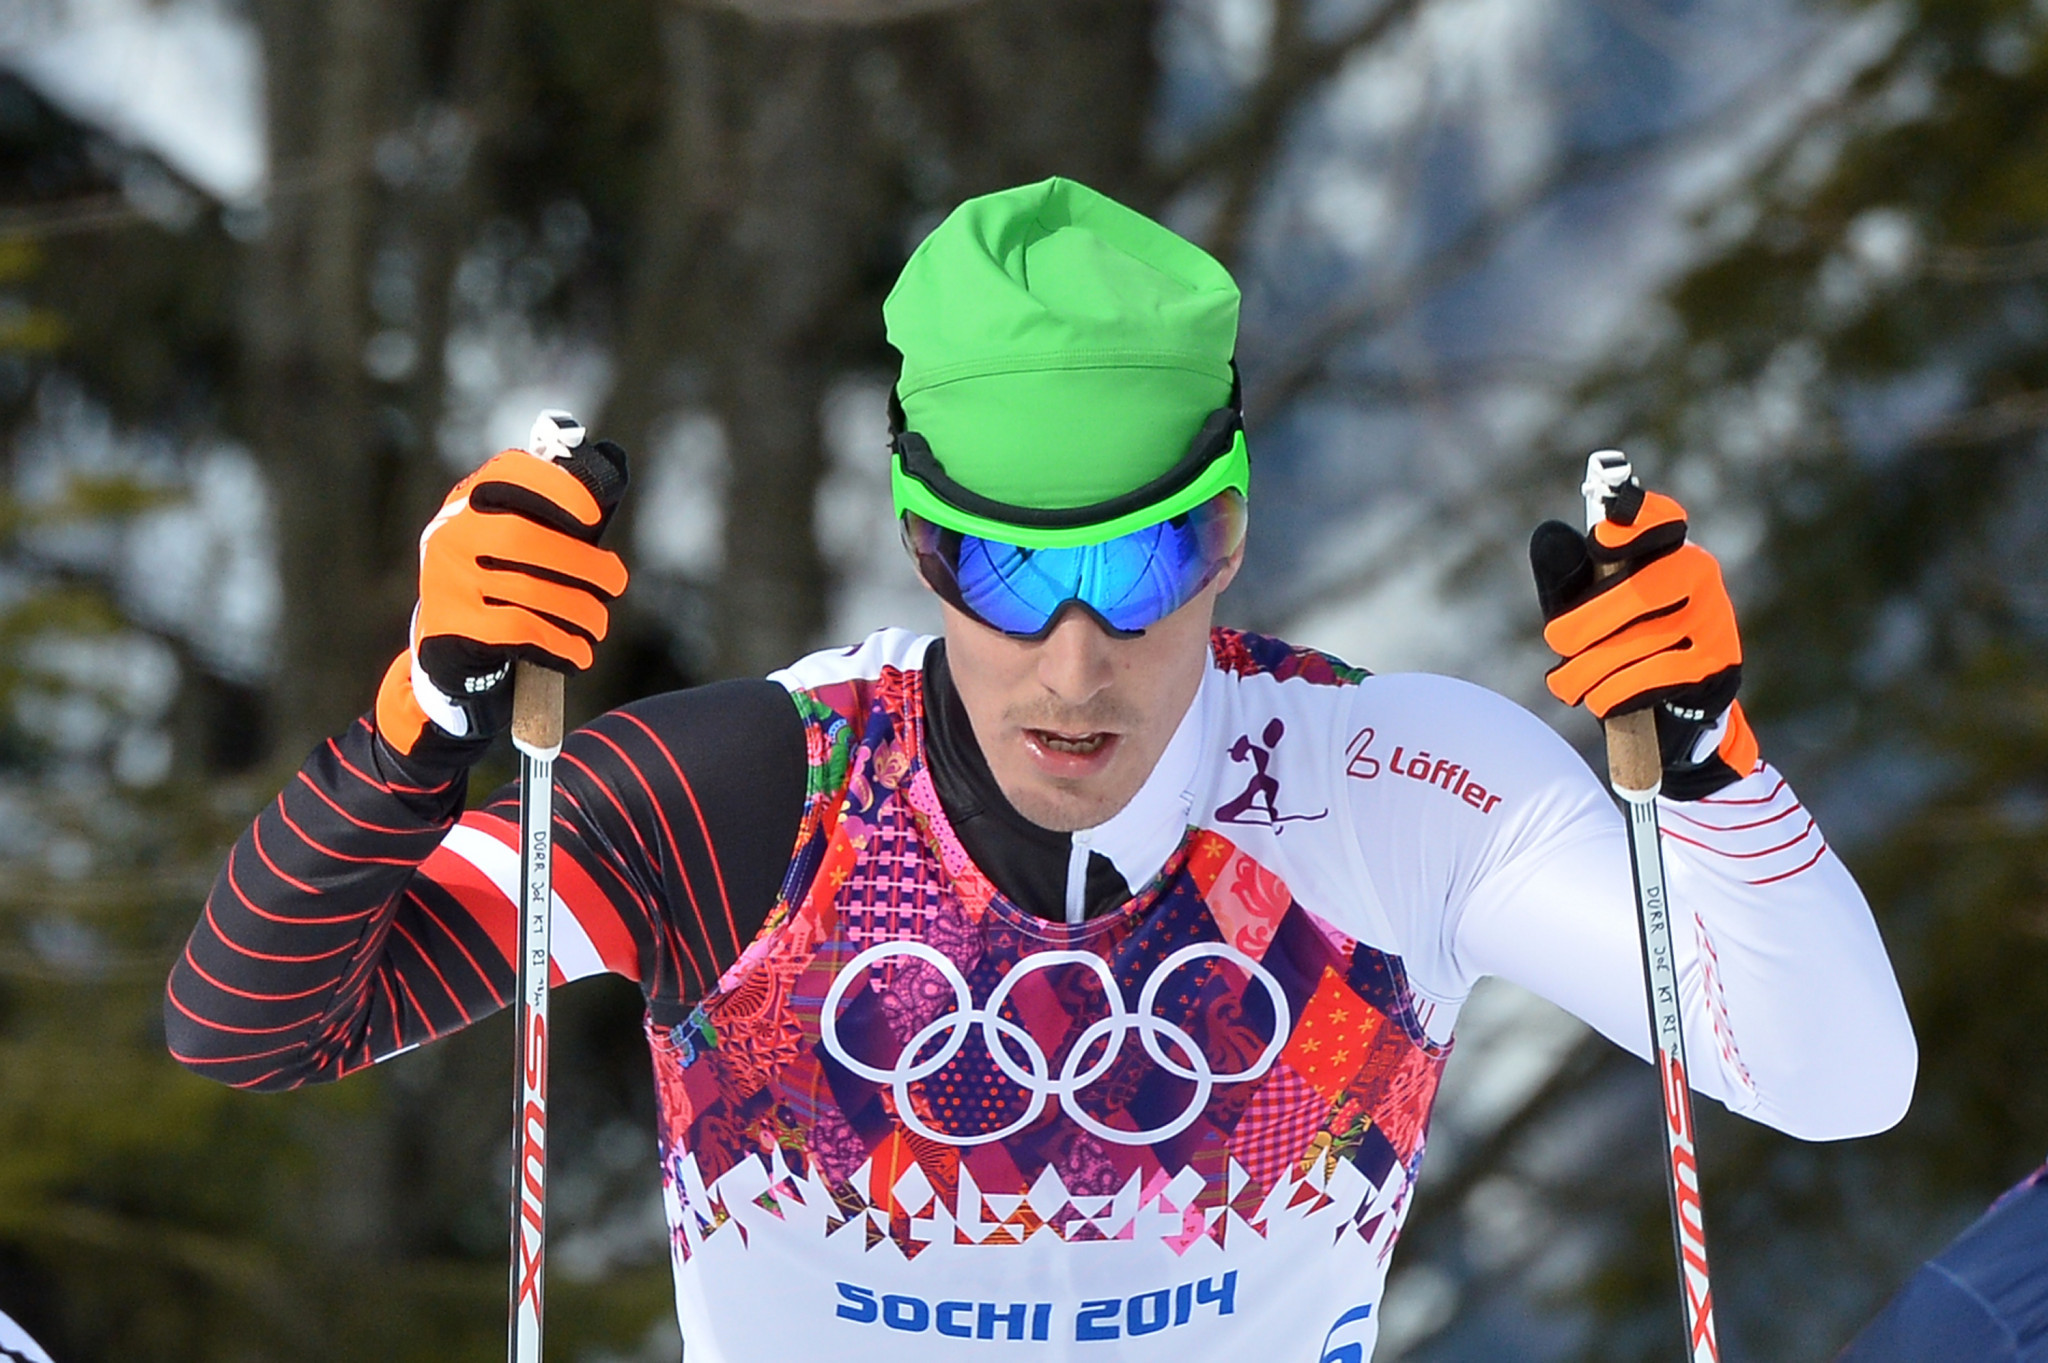 Austrian skier Johannes Dürr, previously disqualified at Sochi 2014 and who subsequently admitted doping in a television interview with German broadcaster ARD, has been arrested in Innsbruck ©Getty Images